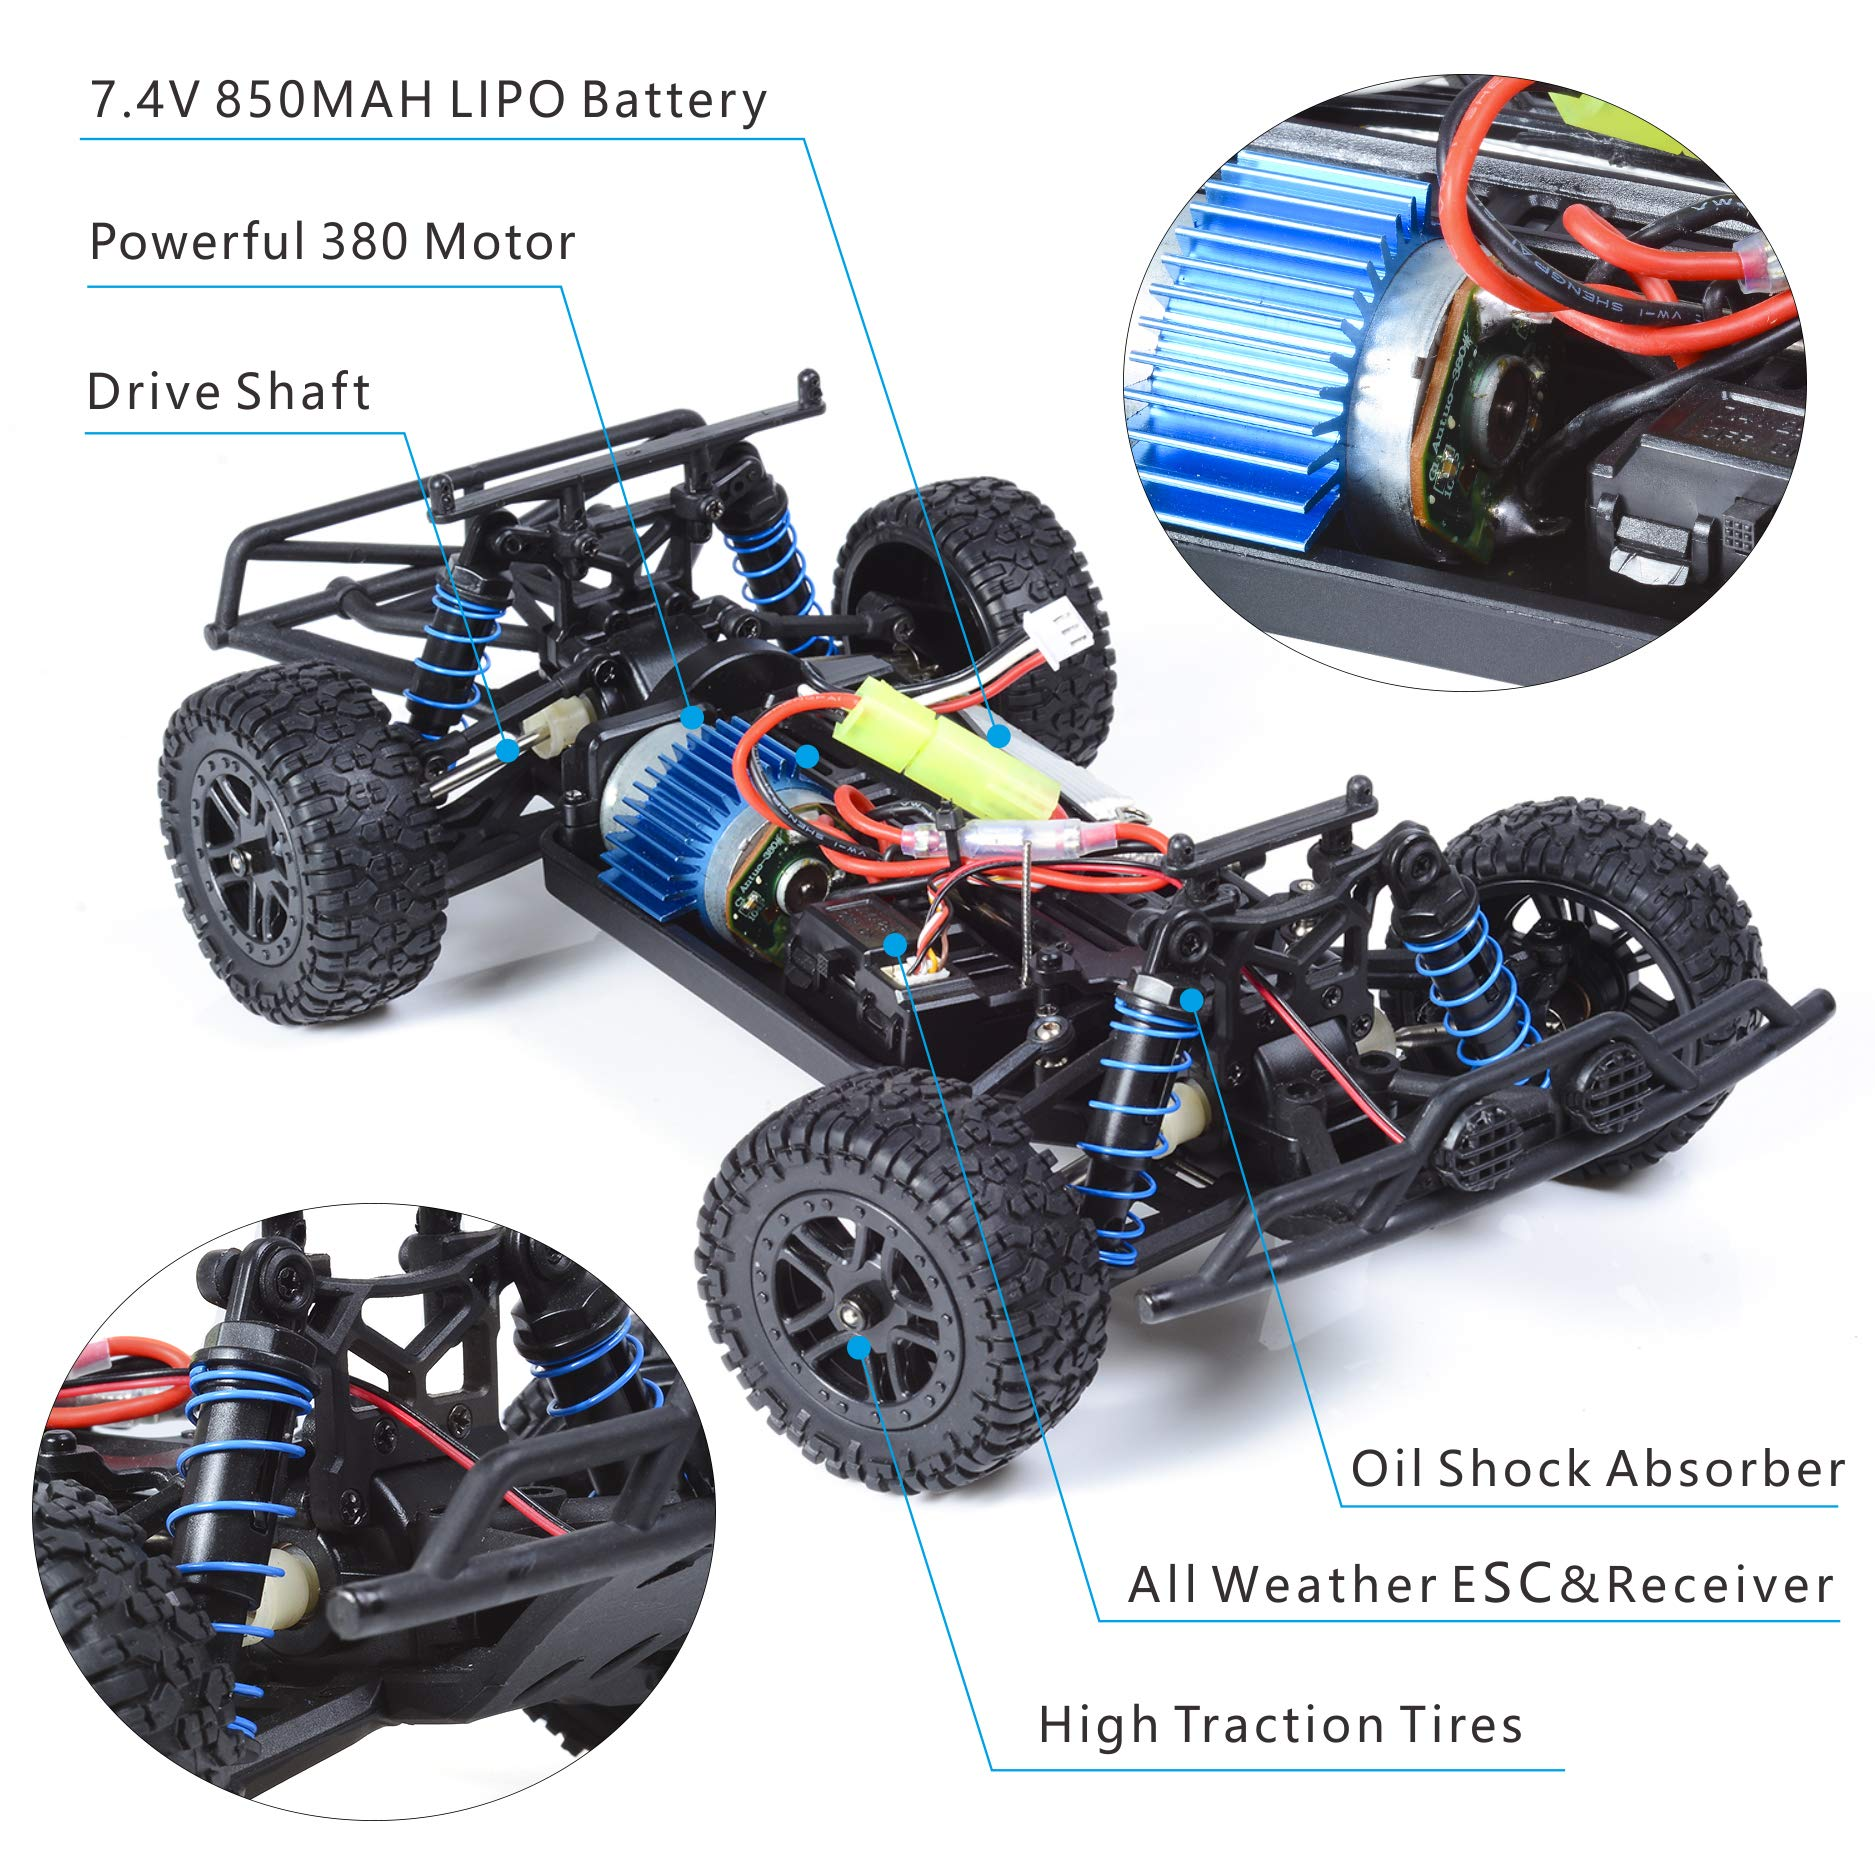 EXERCISE N PLAY RC Car, Remote Control Car, Terrain RC Cars, Electric Remote Control Off Road Monster Truck, 1:18 Scale 2.4Ghz Radio 4WD Fast 30+ MPH RC Car, with LED Ligh, 2 Rechargeable Batteries by EXERCISE N PLAY (Image #2)